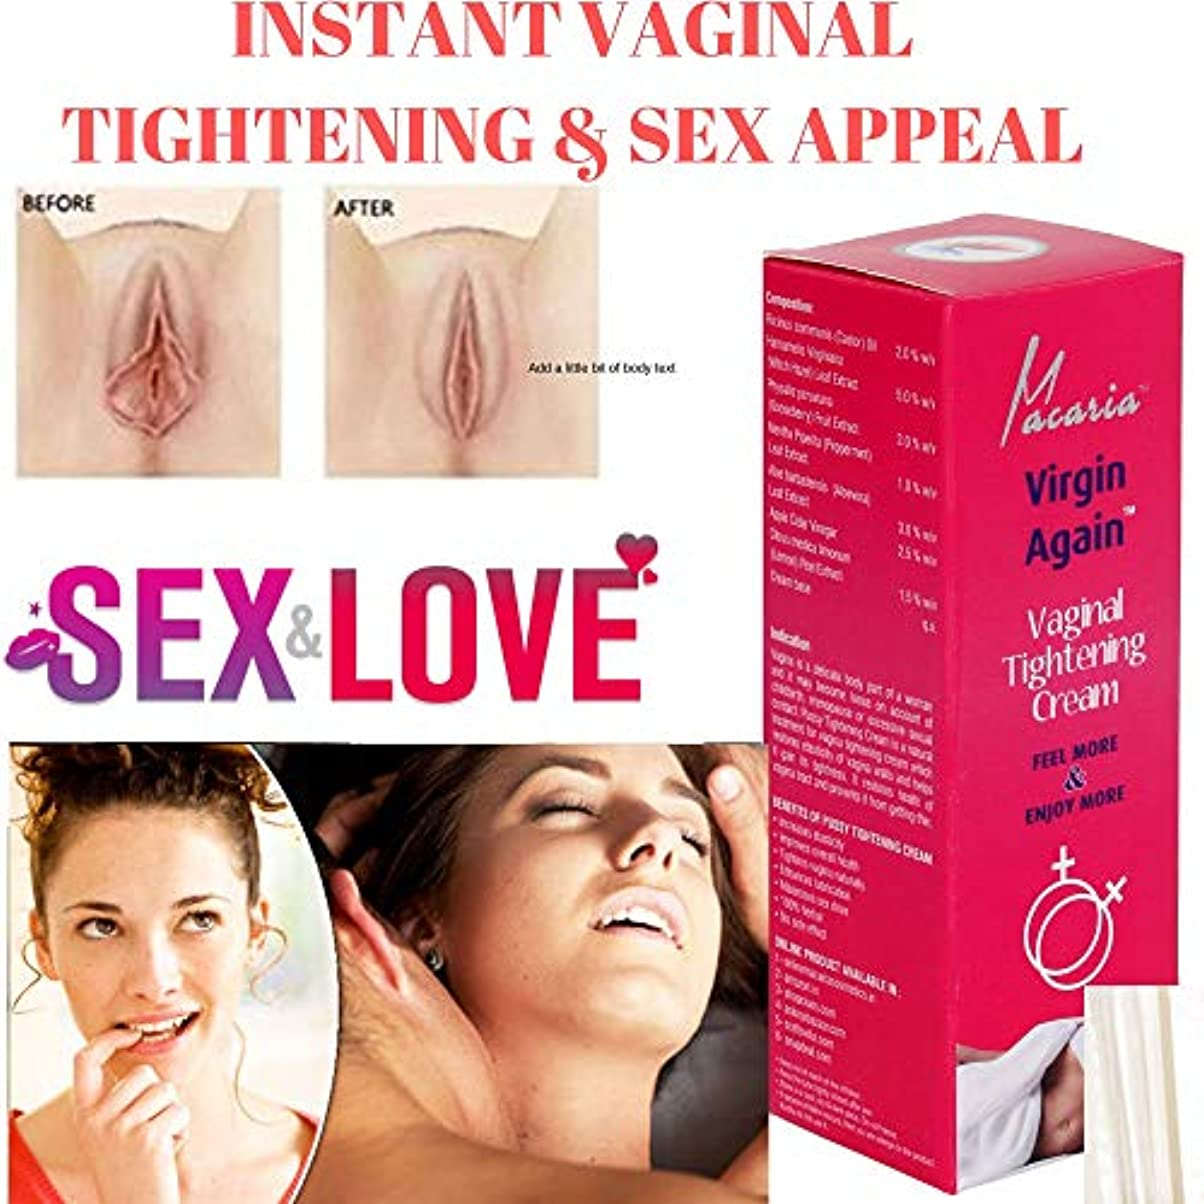 今晩削るドールVIRGIN AGAIN CREAM ( VAGINAL VAGINA TIGHTENING CREAM GEL LOTION VIRGIN AGAIN CREAM ( VAGINAL VAGINA TIGHTENING...